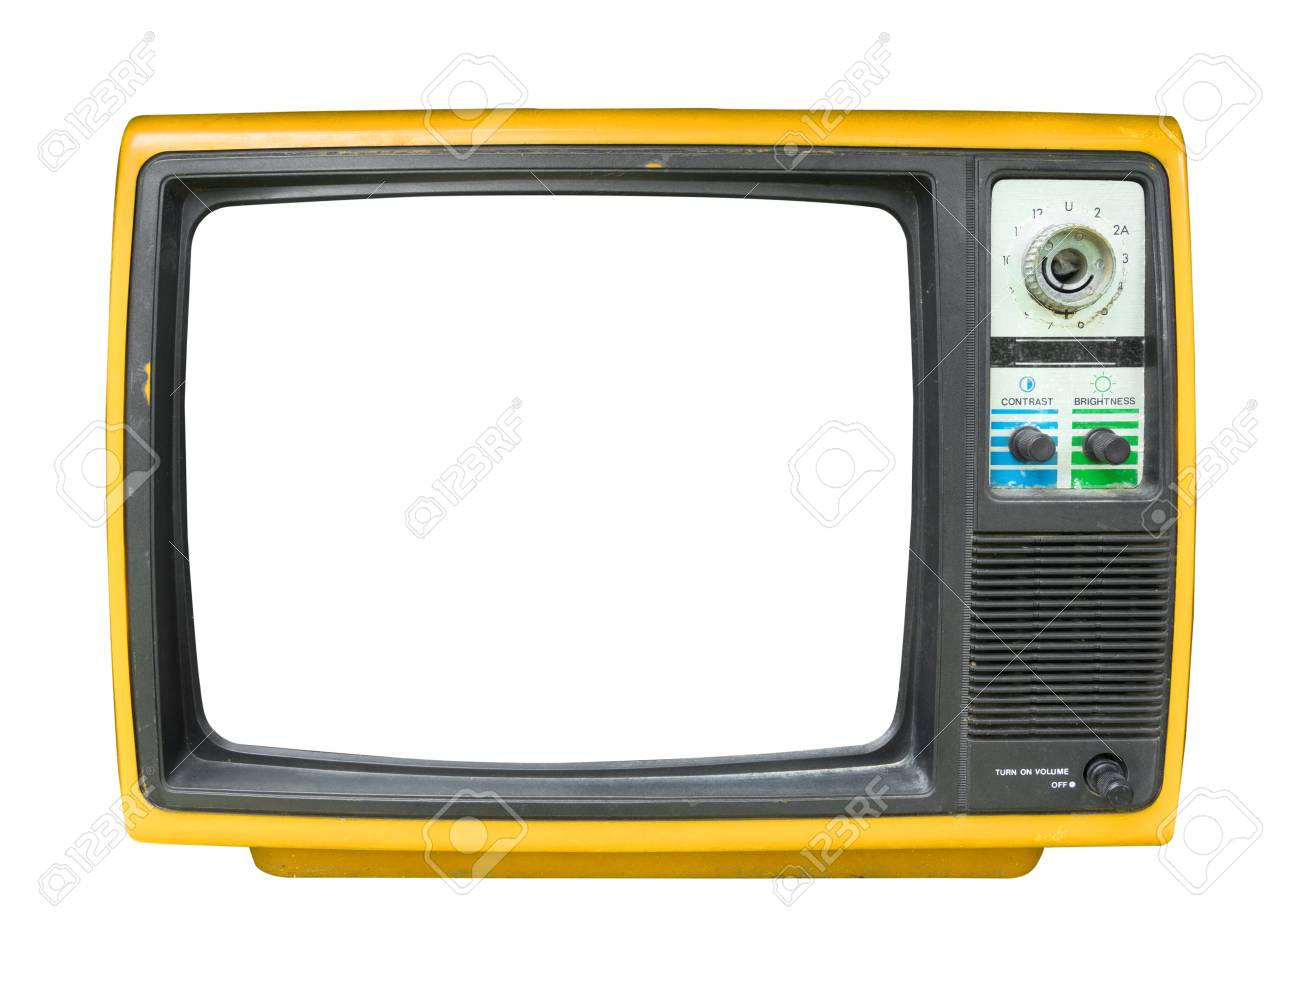 Retro television - old vintage TV with frame screen isolate on white for object, retro technology - 93858118